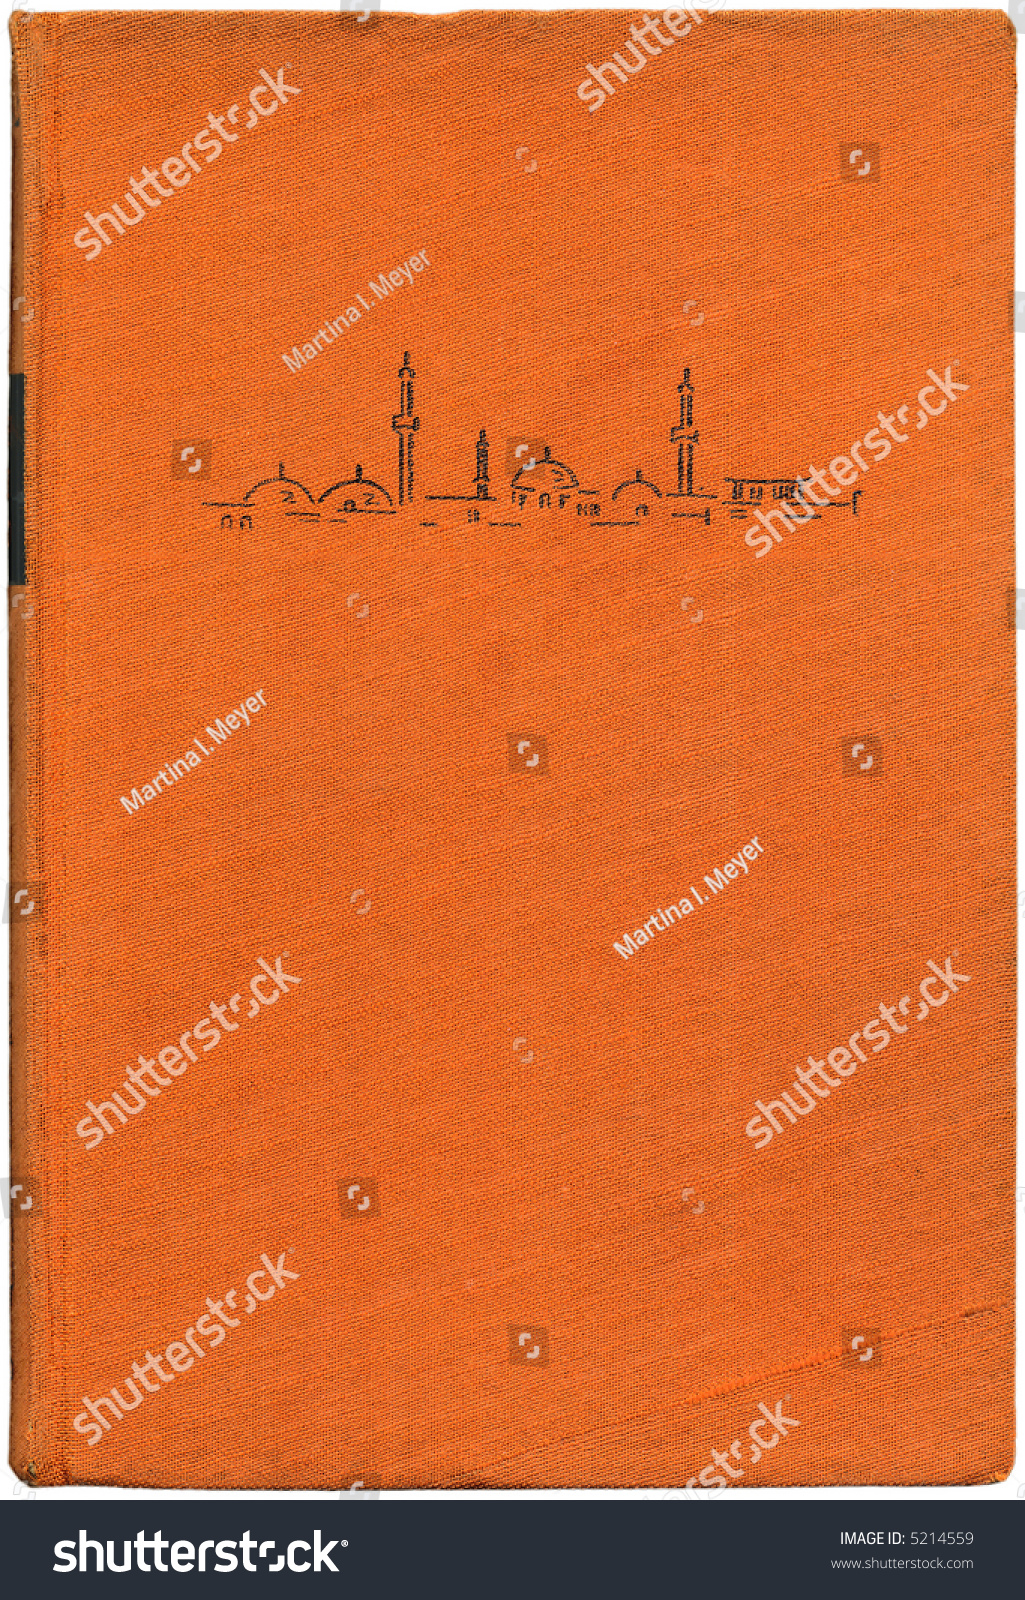 Vintage Book Cover Illustration : Vintage book cover bound in orange cloth with an